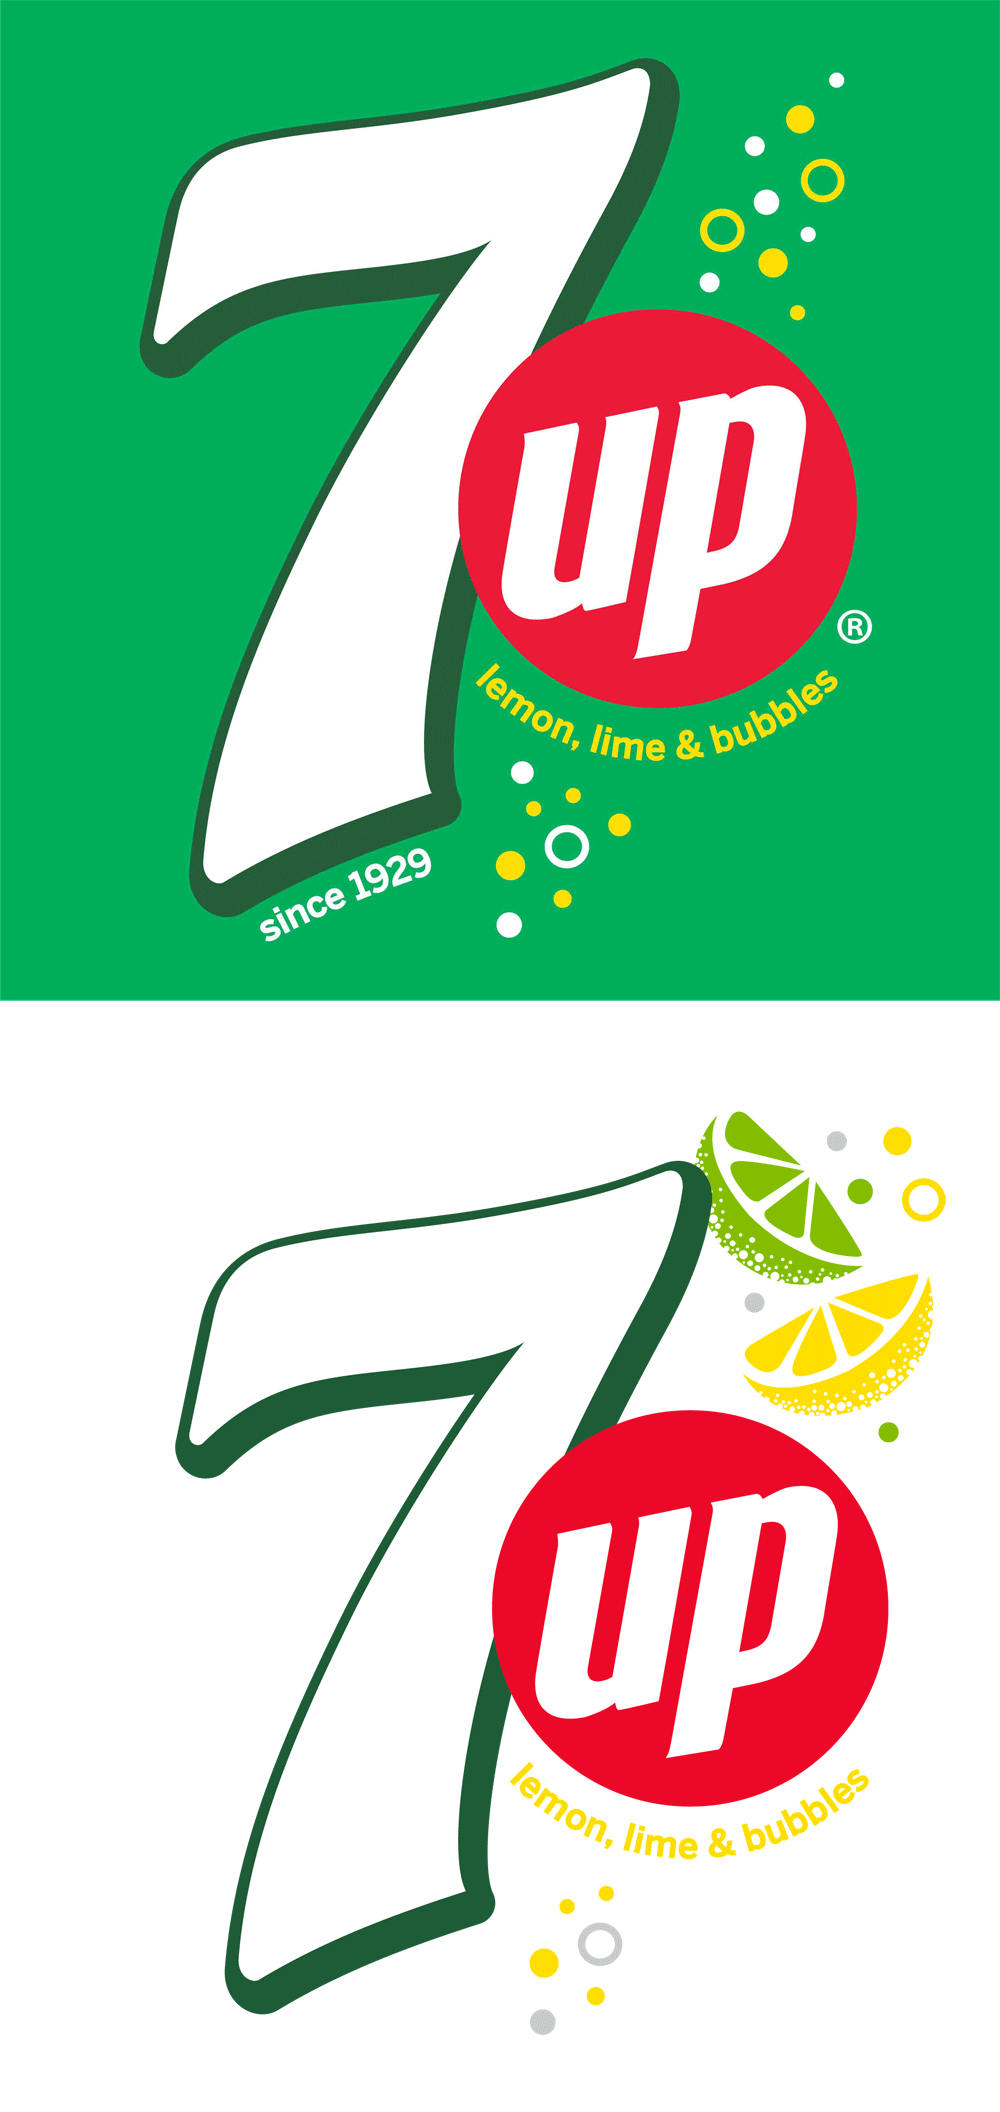 brand new new logo and packaging for pepsico s 7up